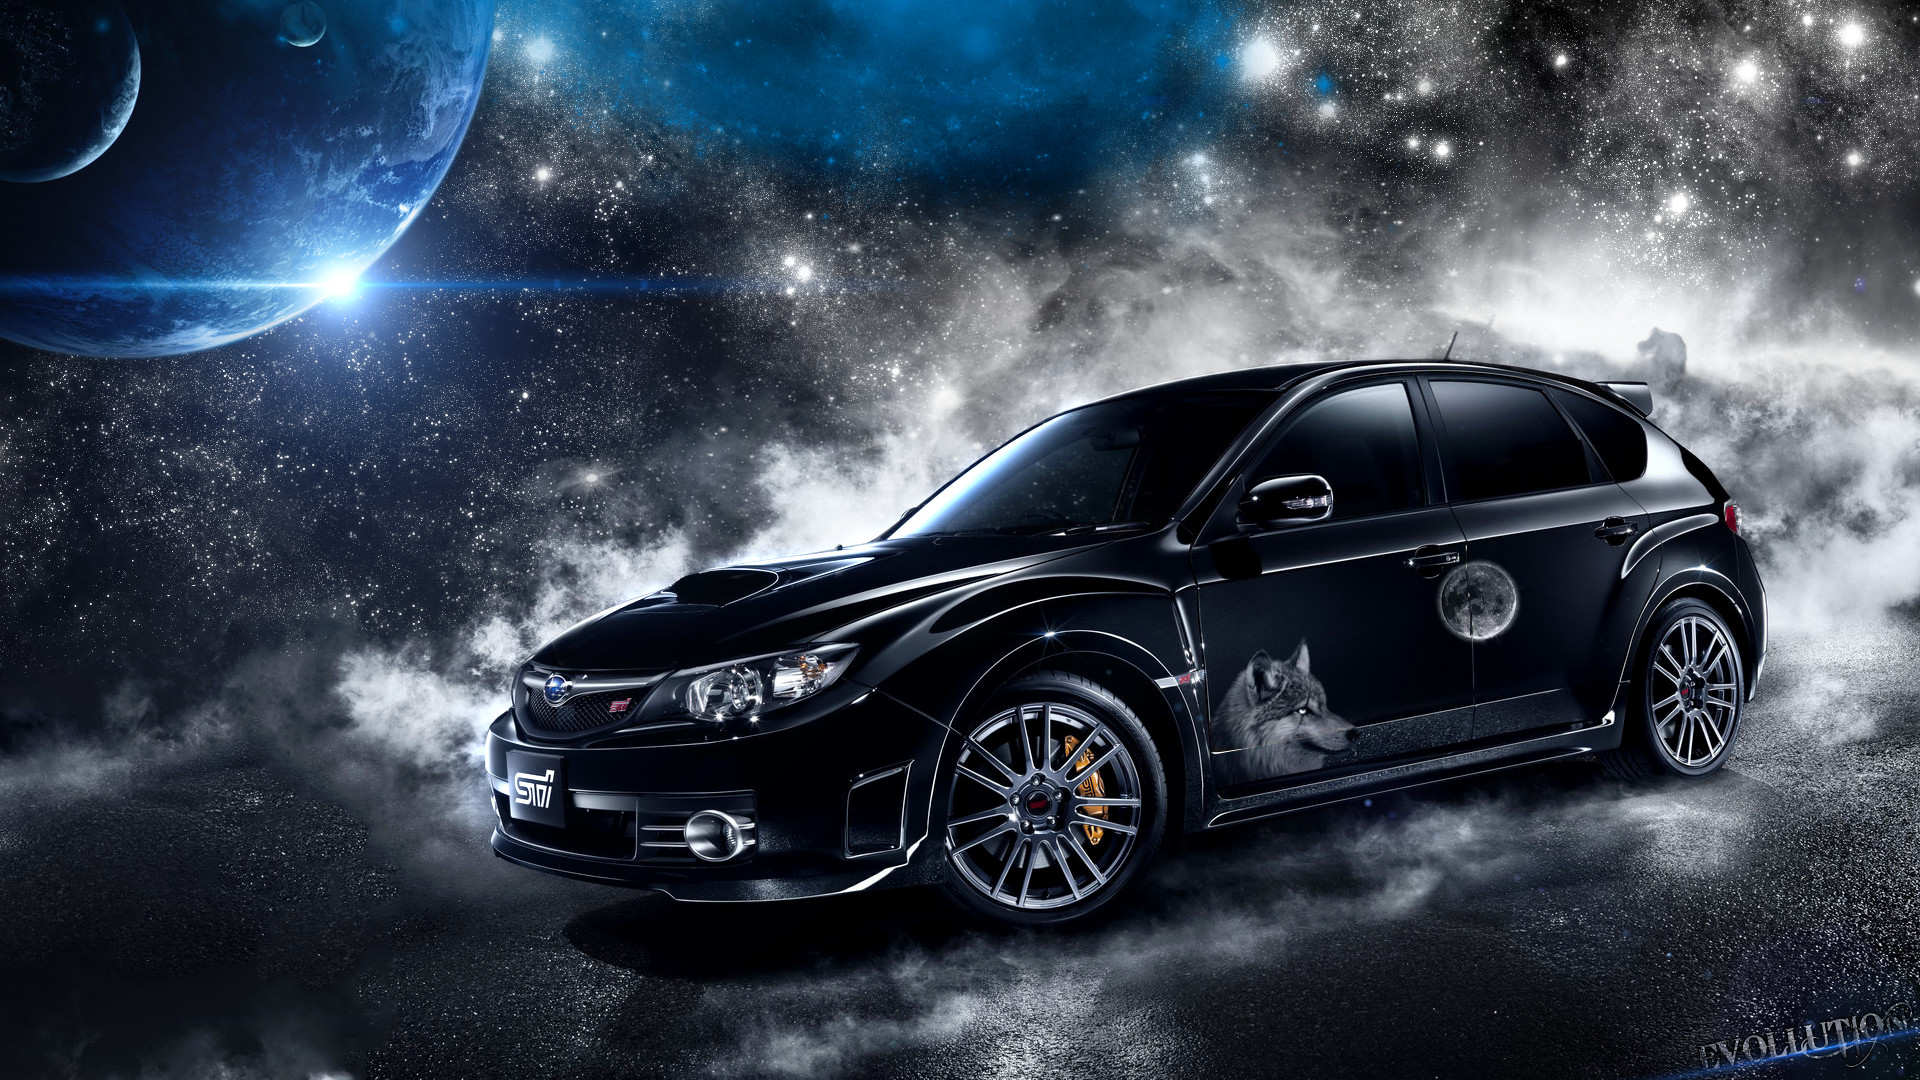 Subaru Wallpapers 70 Background Pictures